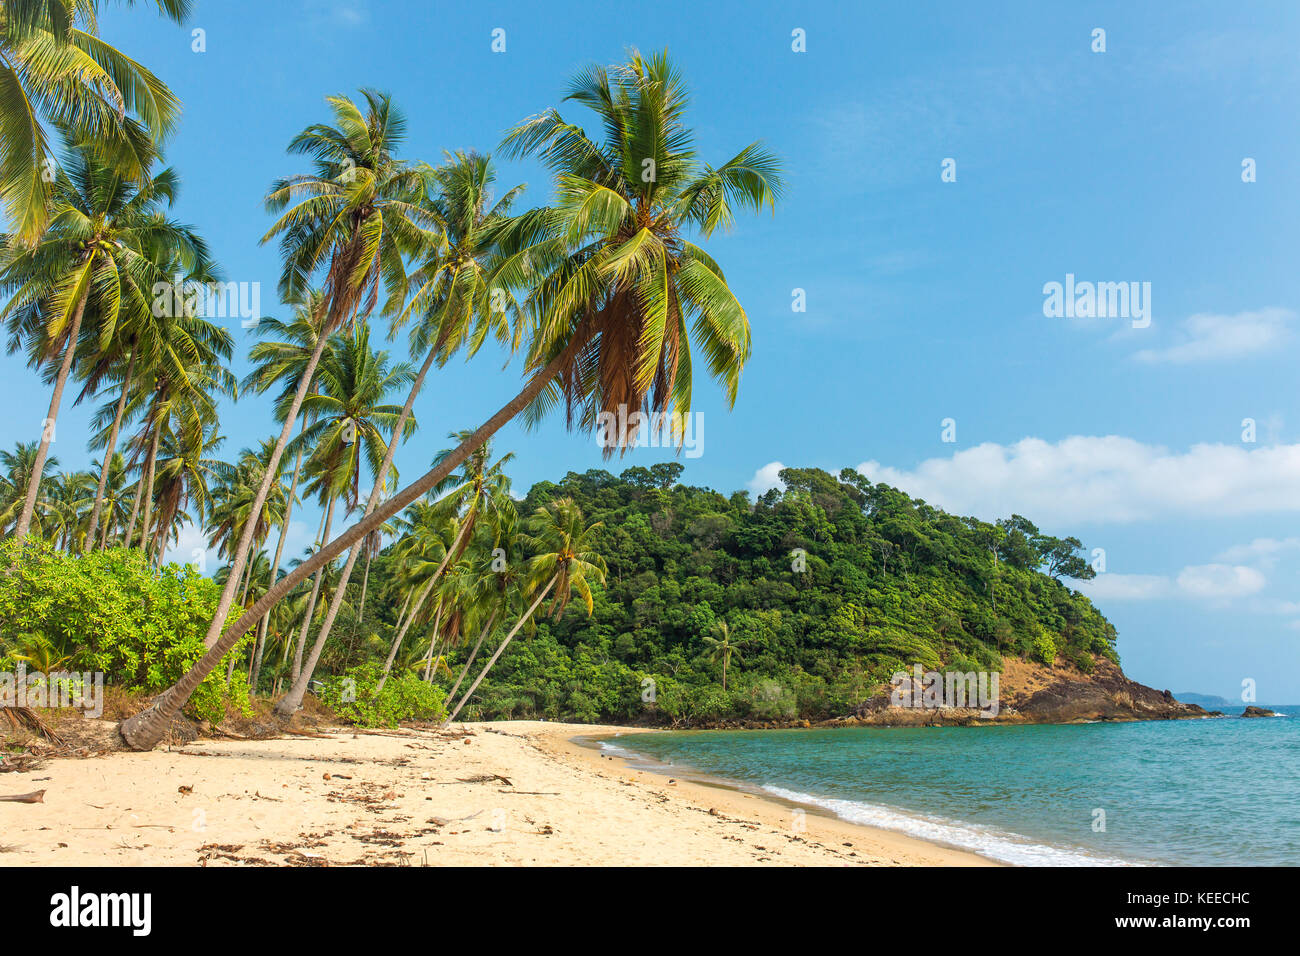 Beautiful tropical beach with palm trees on Koh Chang island in Thailand Stock Photo